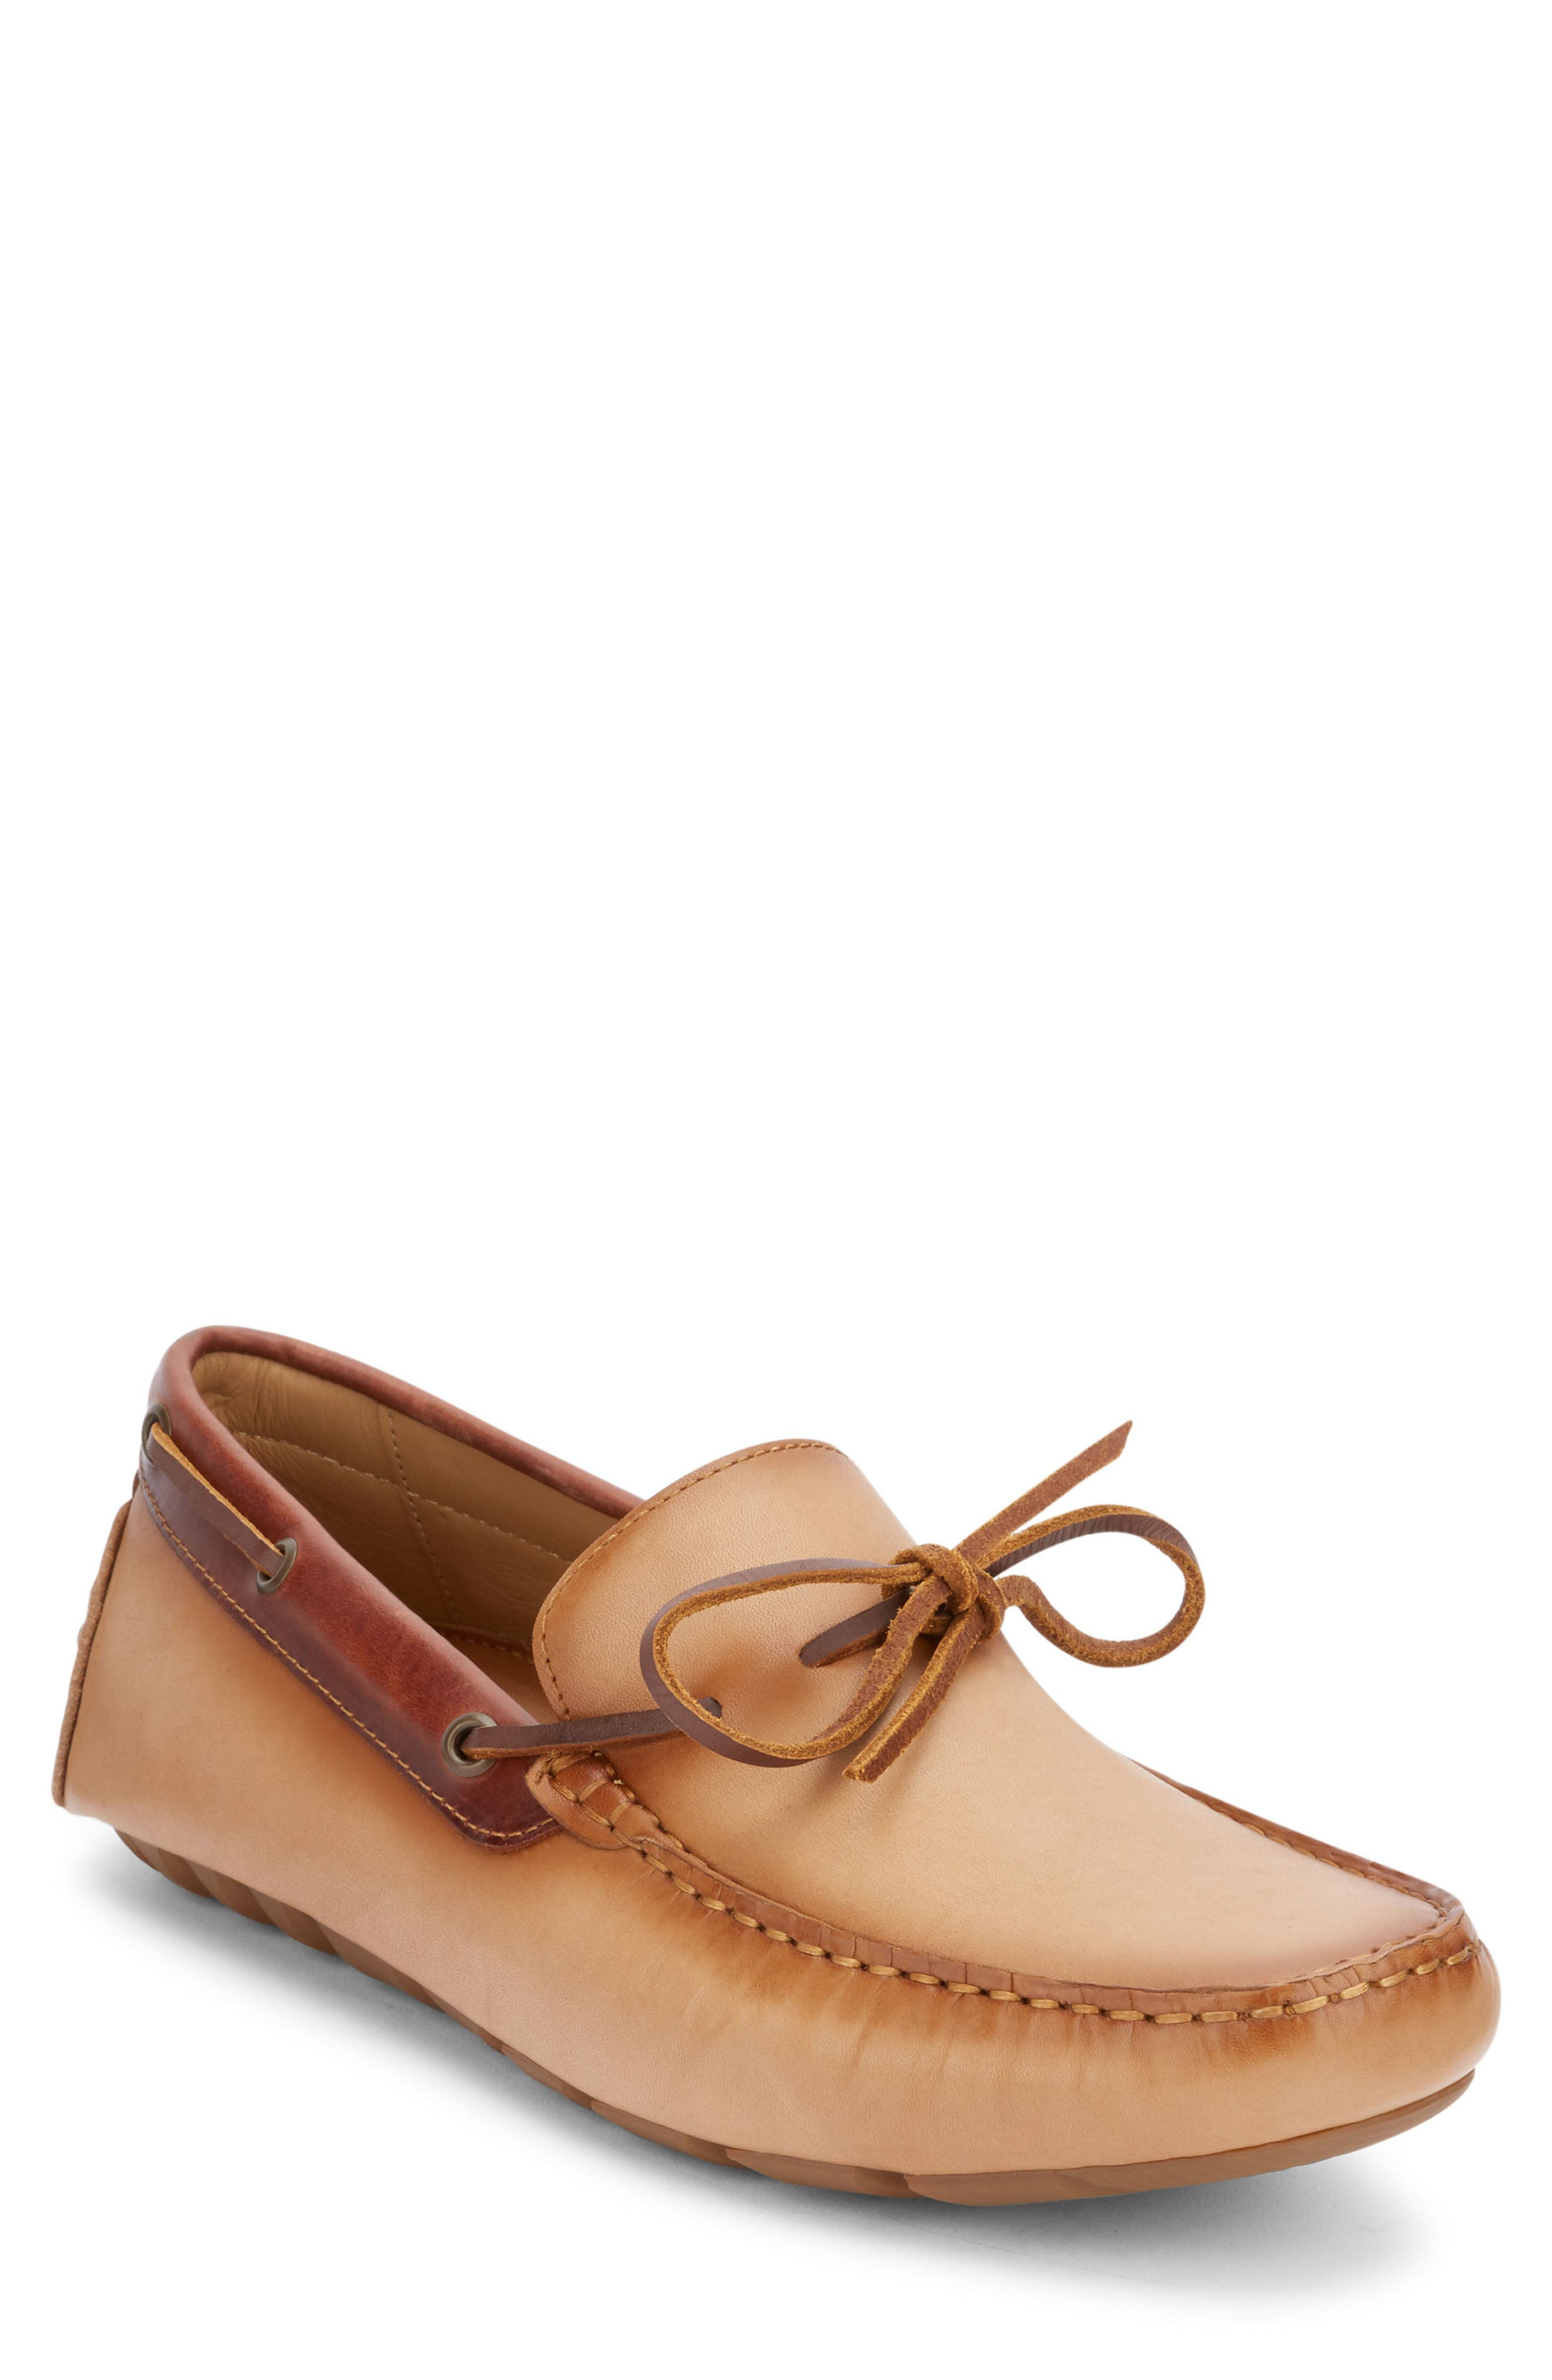 Wyatt Driving Shoe,                         Main,                         color, Vachetta Leather